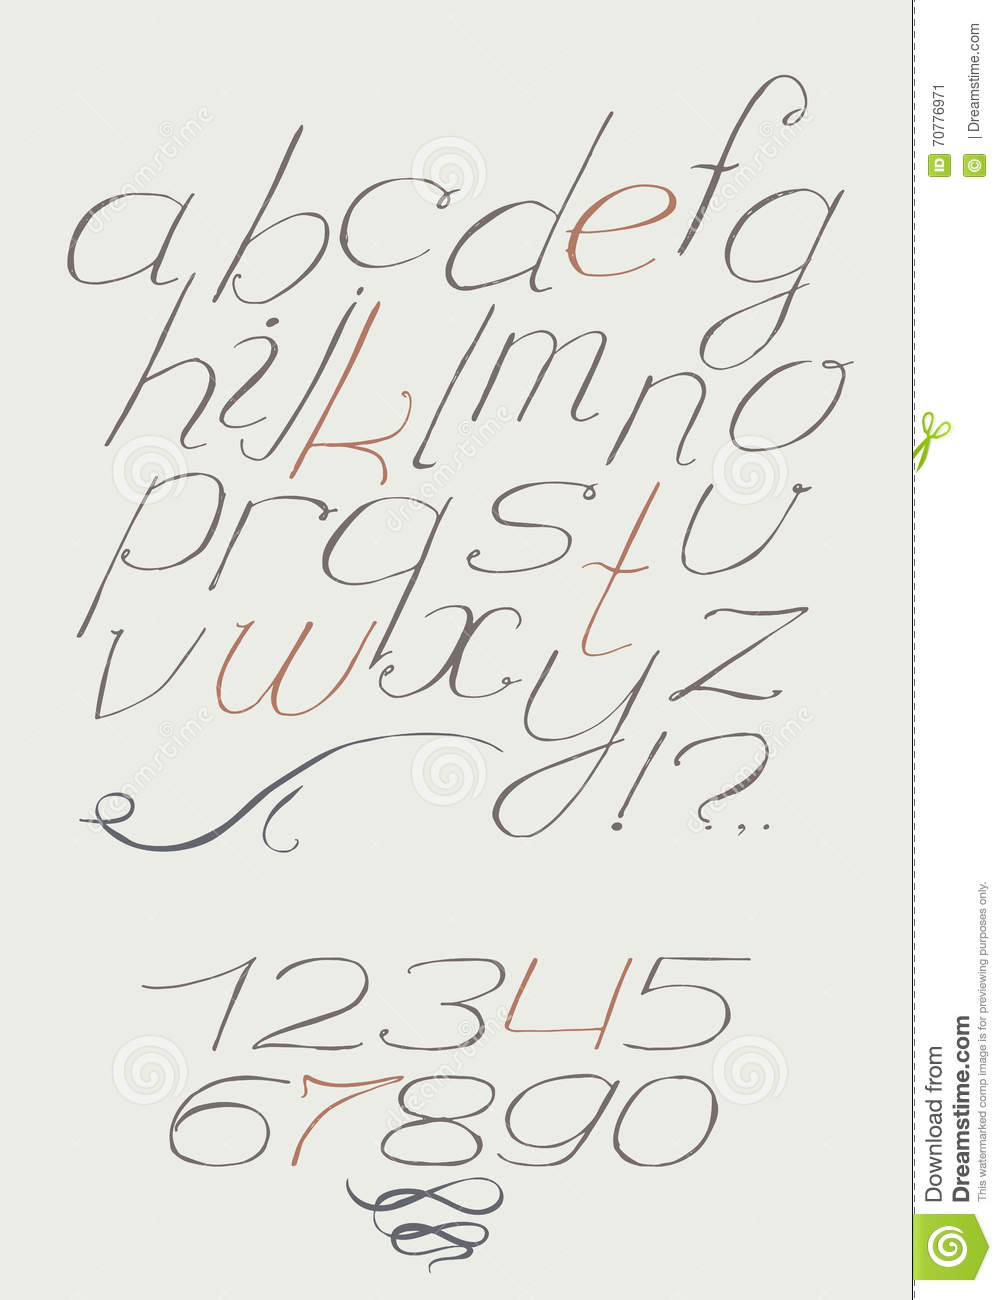 English Hand Drawn Italic Type Script From A To Z With Digits 0 9 Calligraphy Made Nib Beautiful Elegant Alphabet Painted In Graceful Style